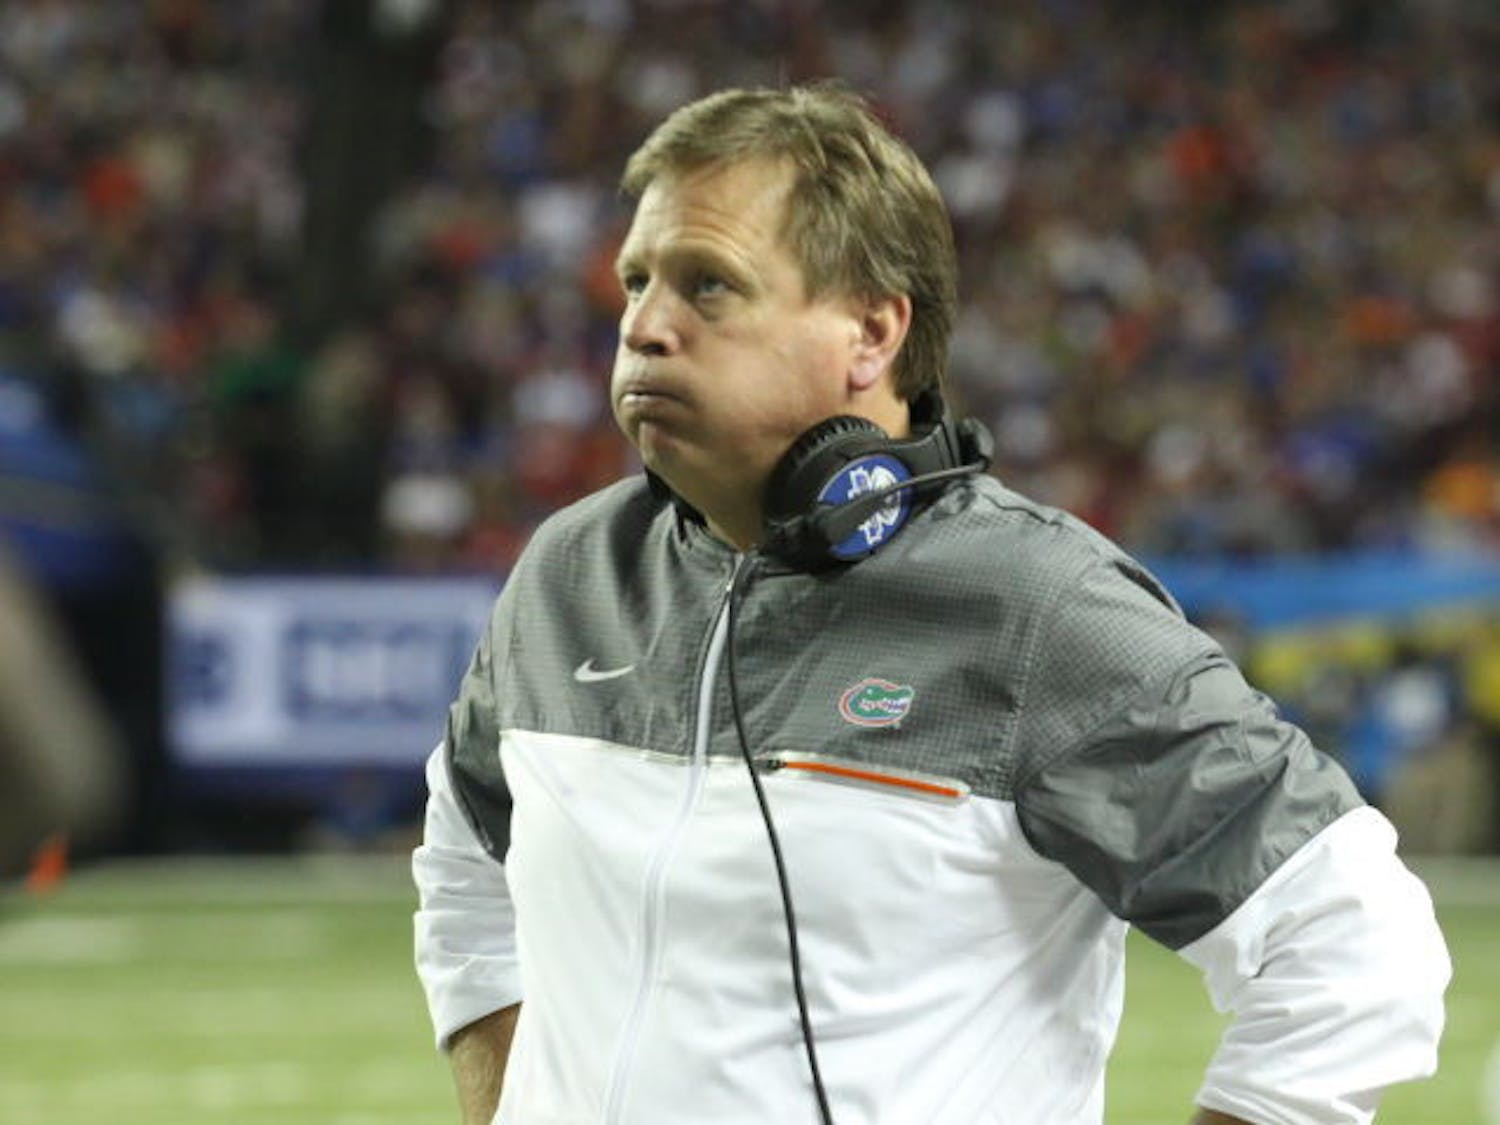 Jim McElwain looks on during Florida's 54-16 loss to Alabama in the SEC Championship Game on Dec. 3, 2016, in Atlanta.